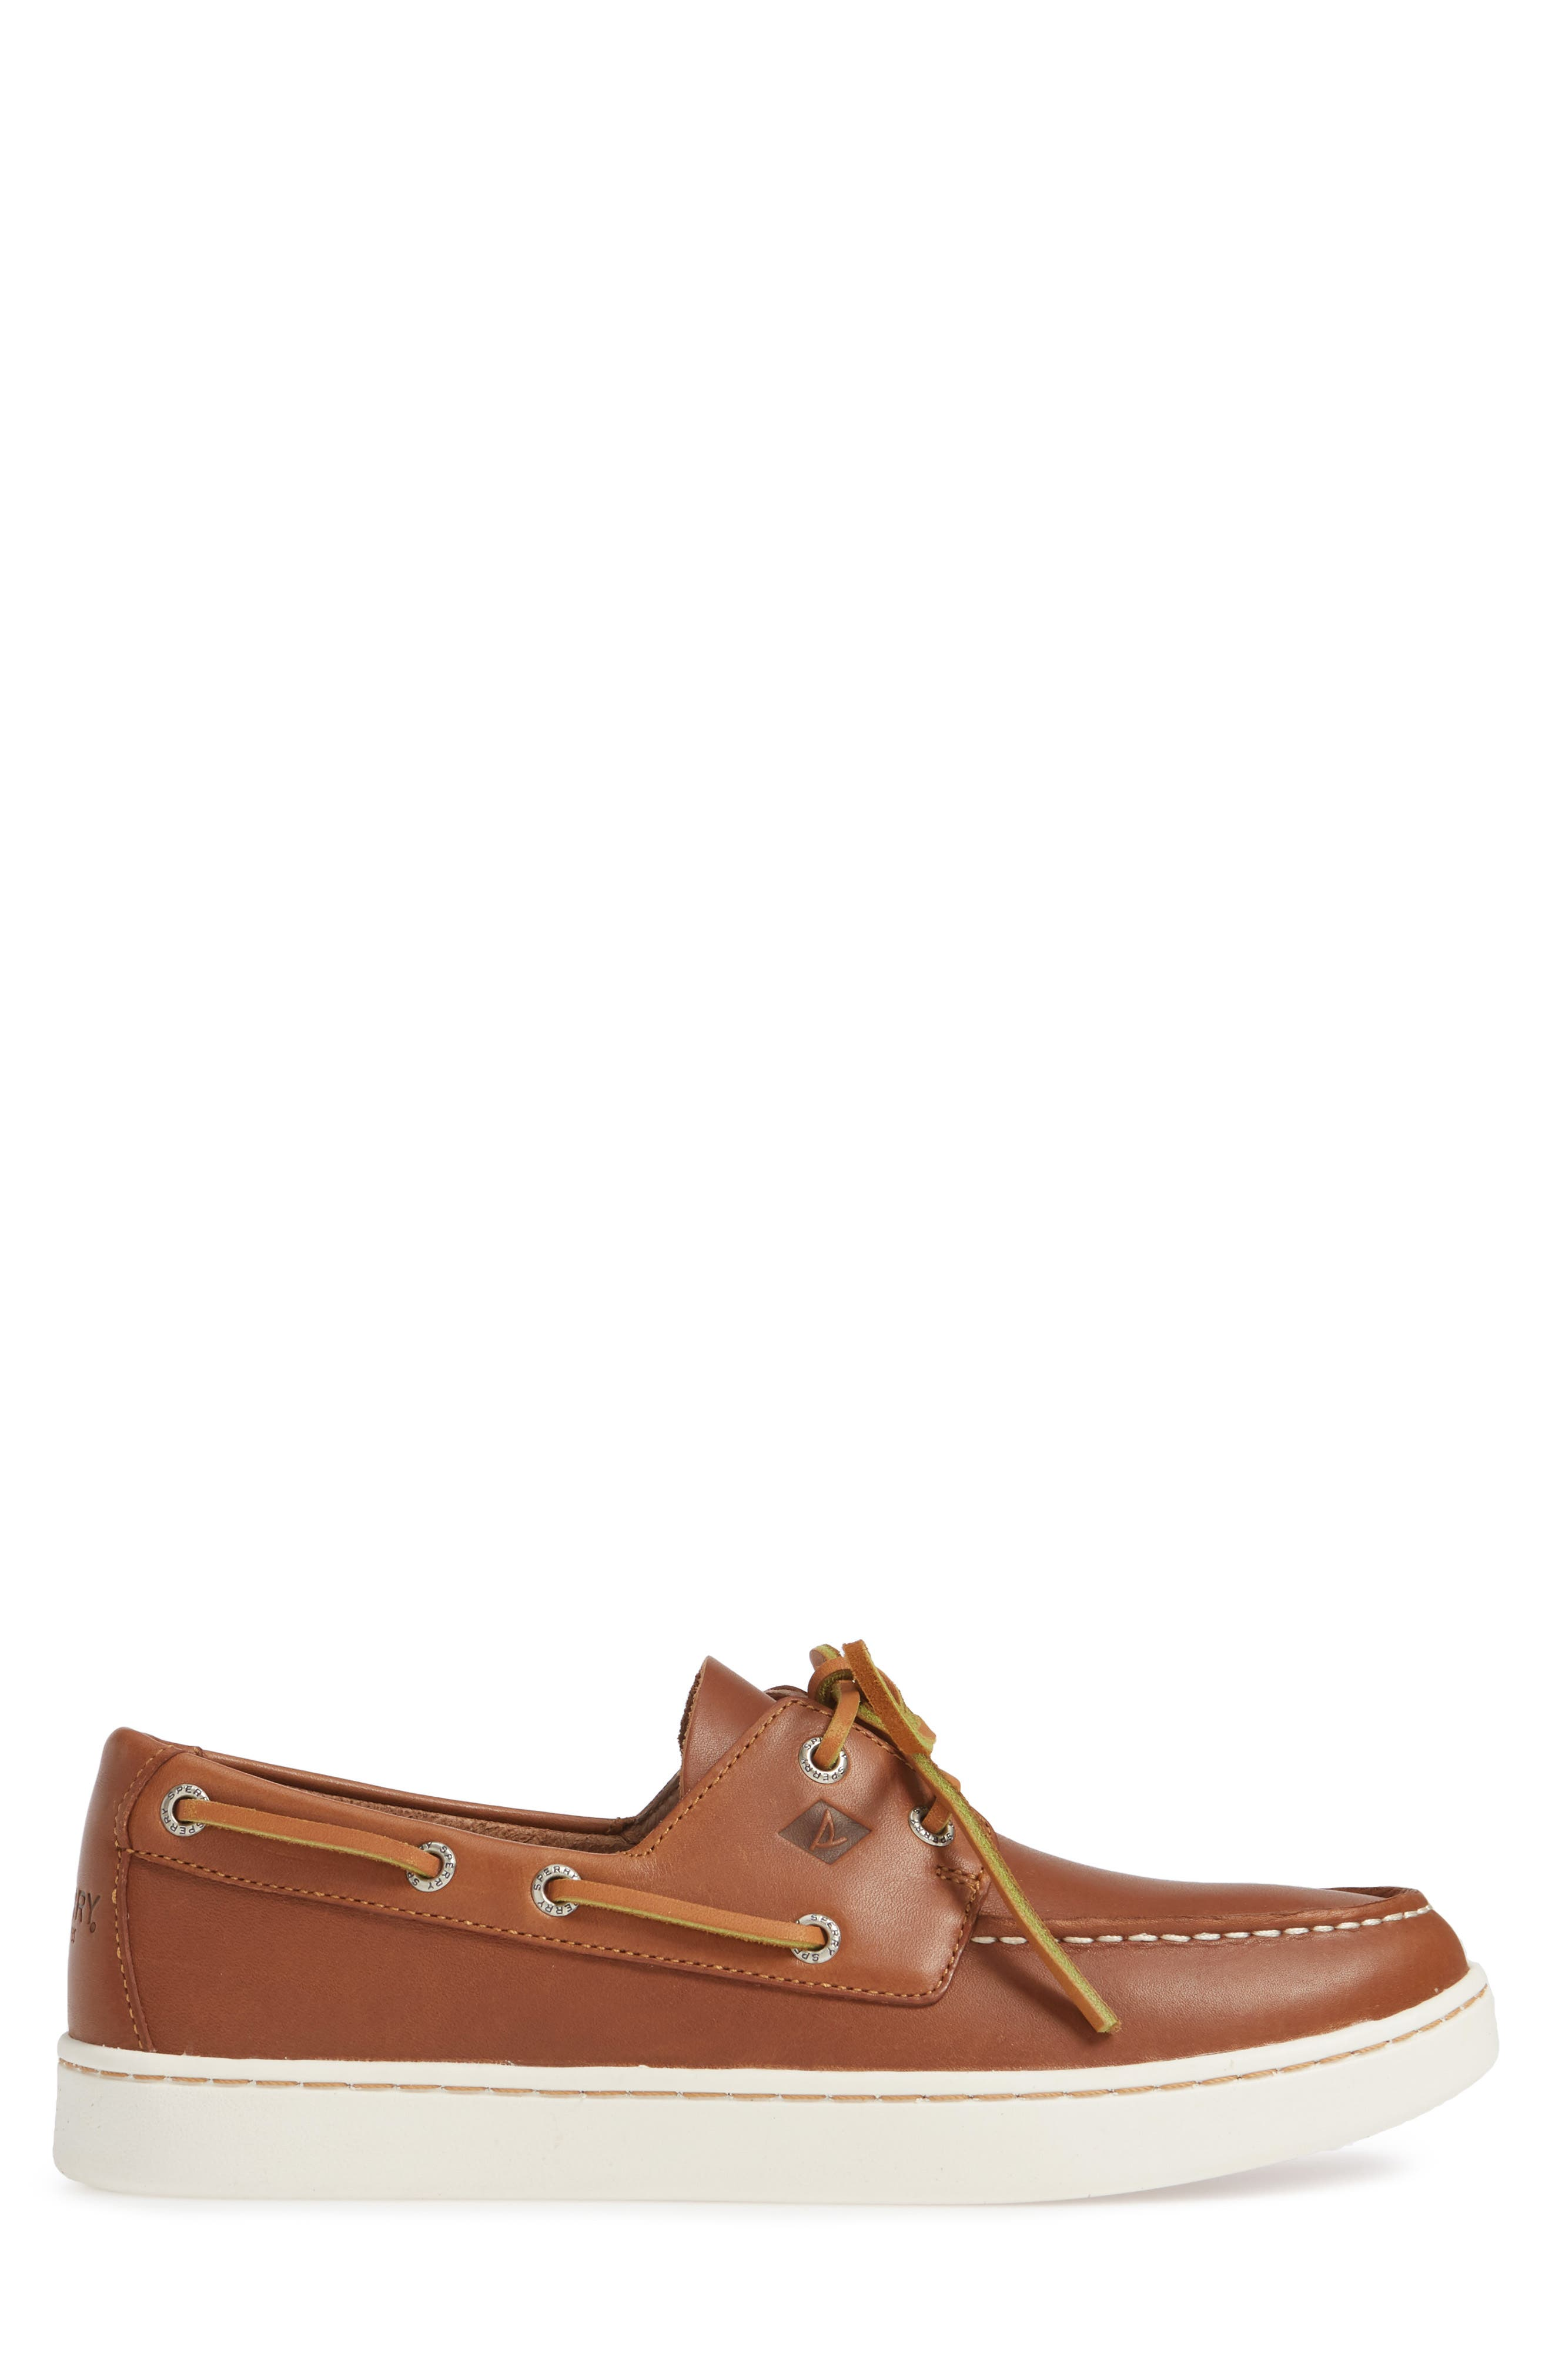 SPERRY, Cup Boat Shoe, Alternate thumbnail 3, color, TAN